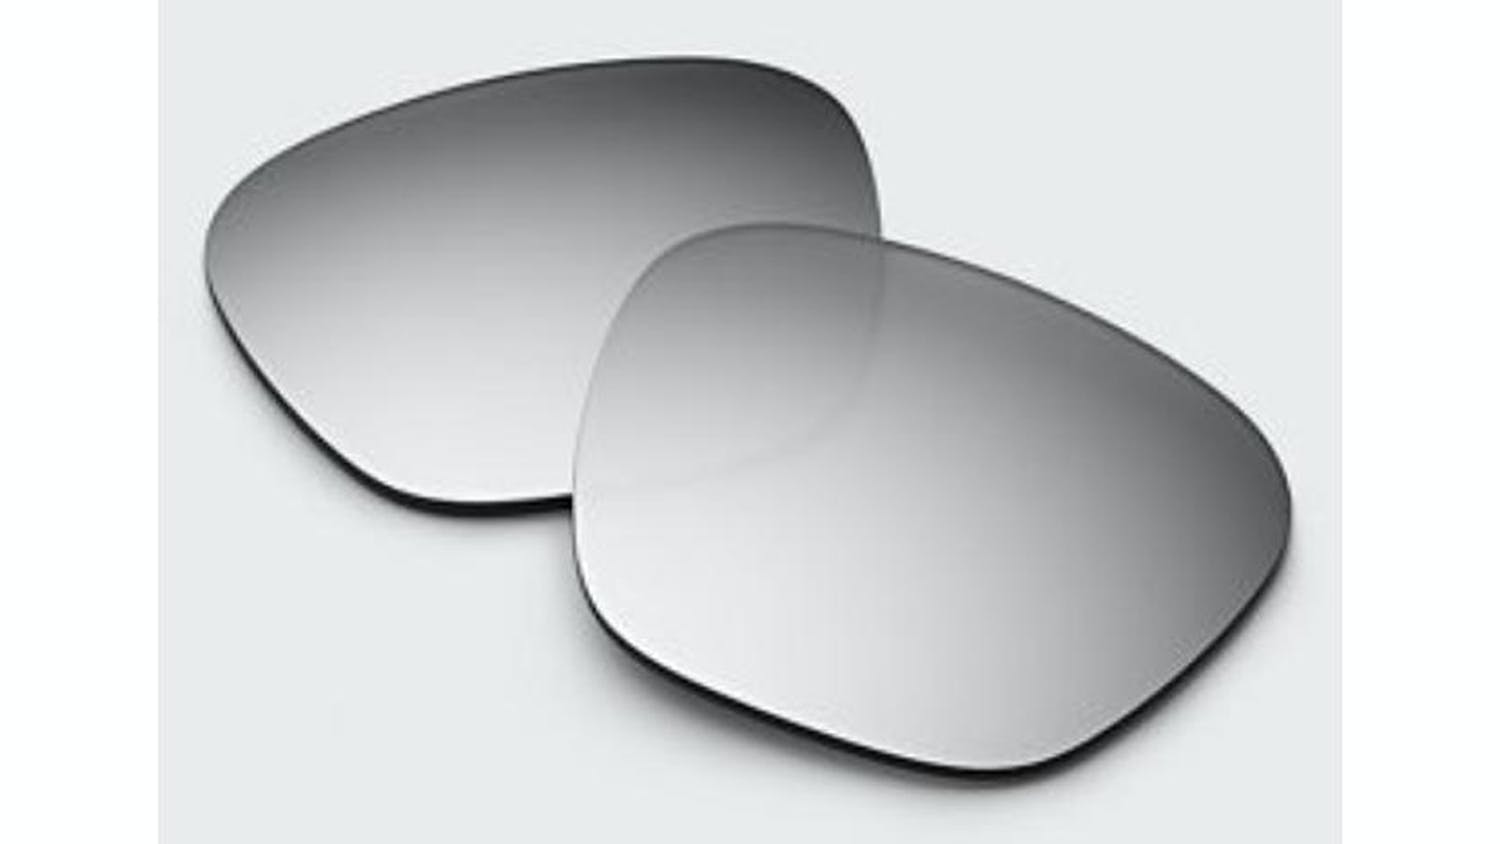 Bose Replacement Lenses Alto Style - Mirrored Silver (Polarized)